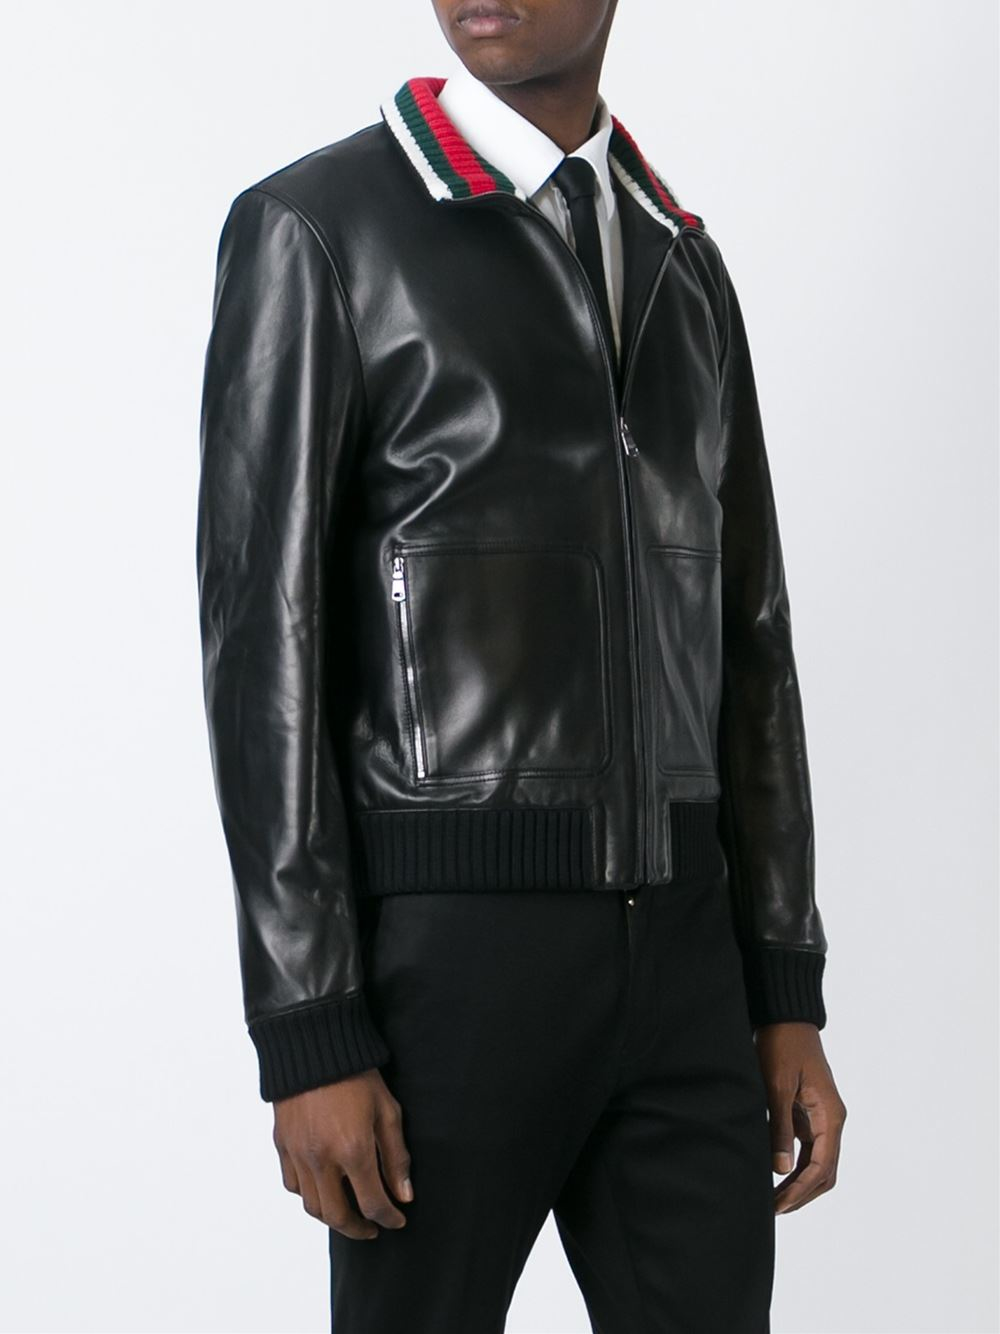 Gucci mens leather jackets